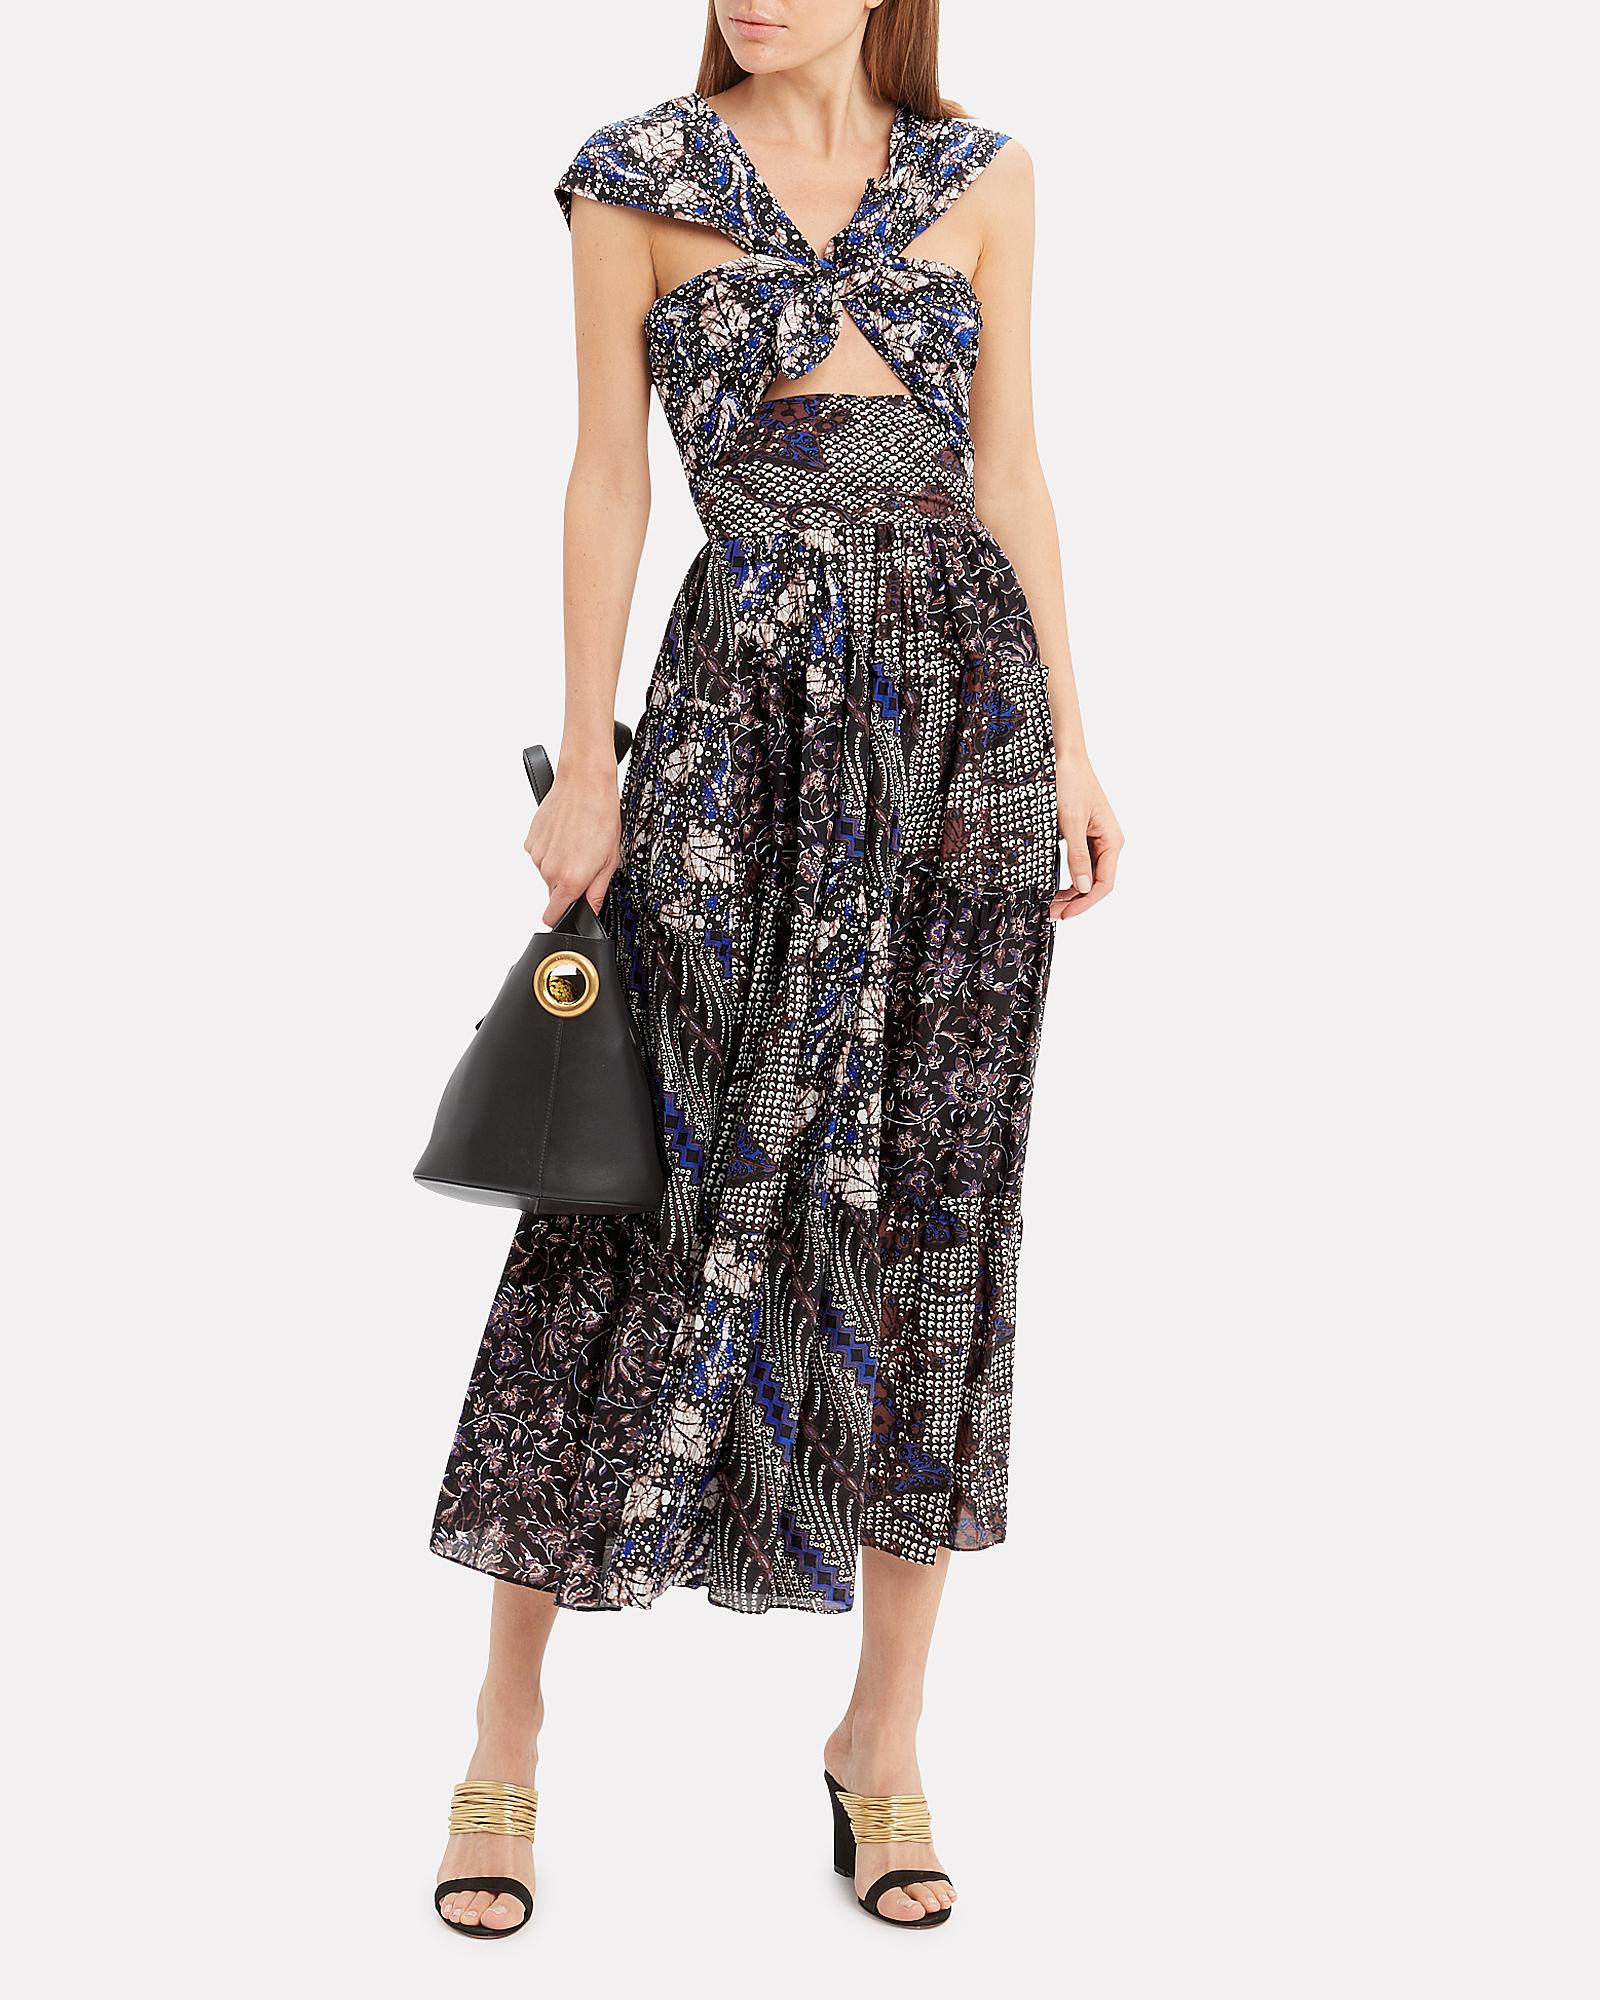 a9822d14a48 Lyst - Ulla Johnson Naaila Printed Dress in Black